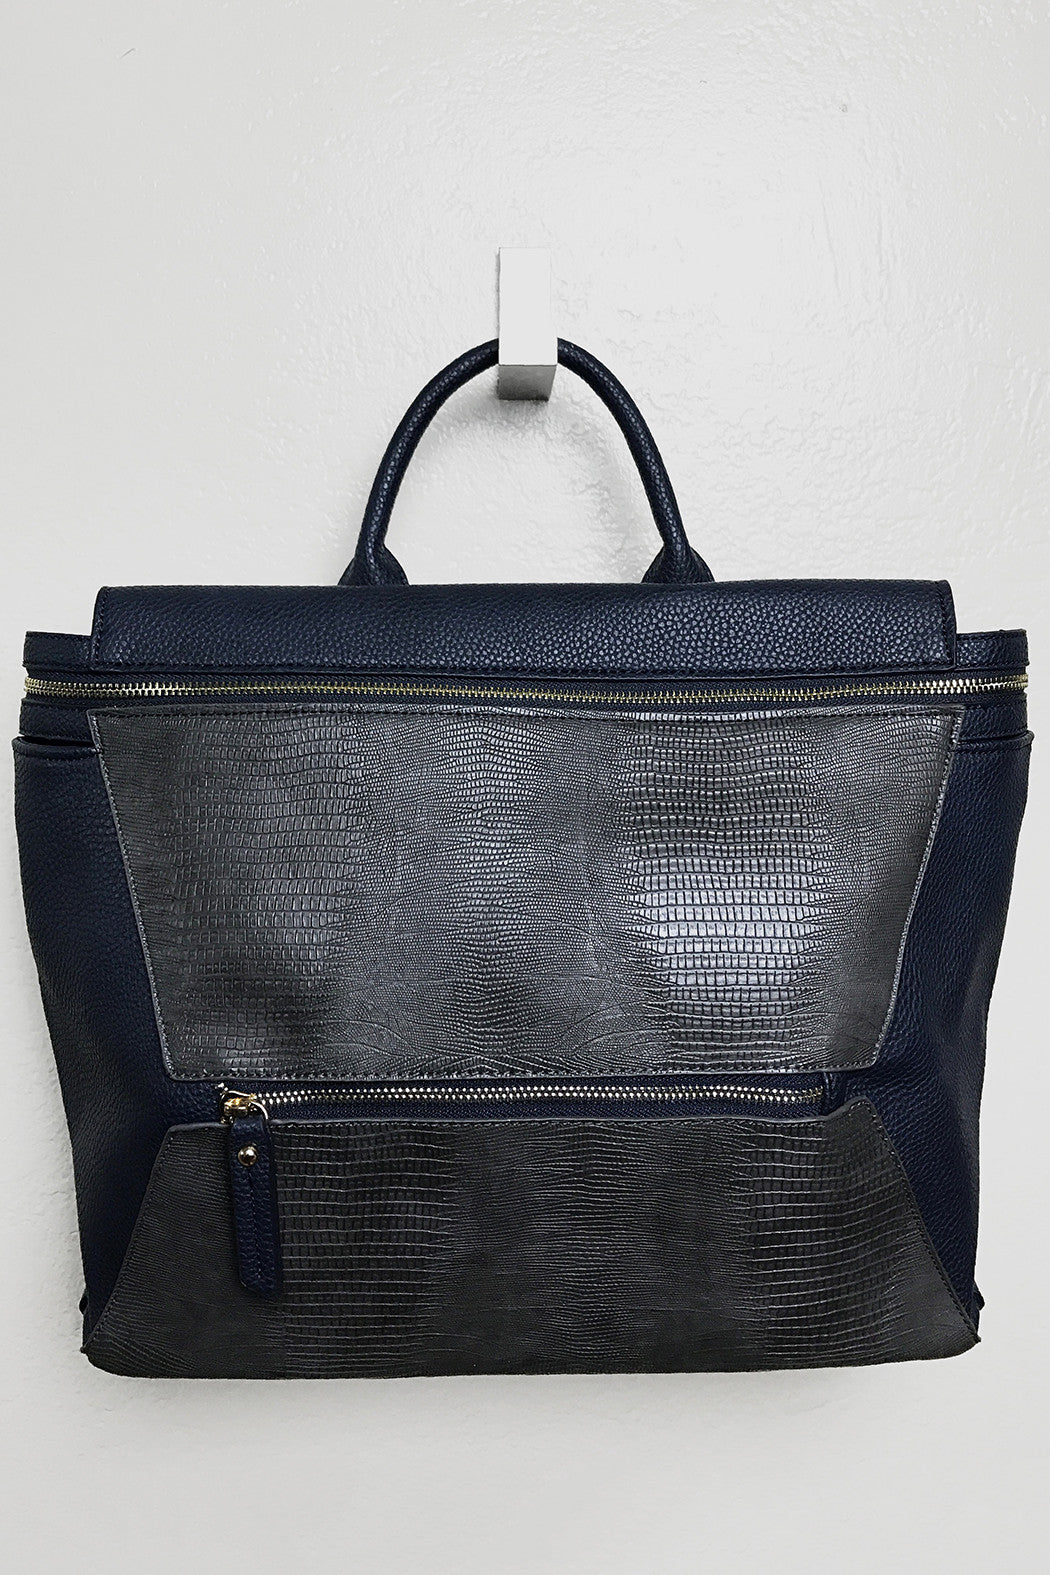 Weekday Navy Satchel - Snatched